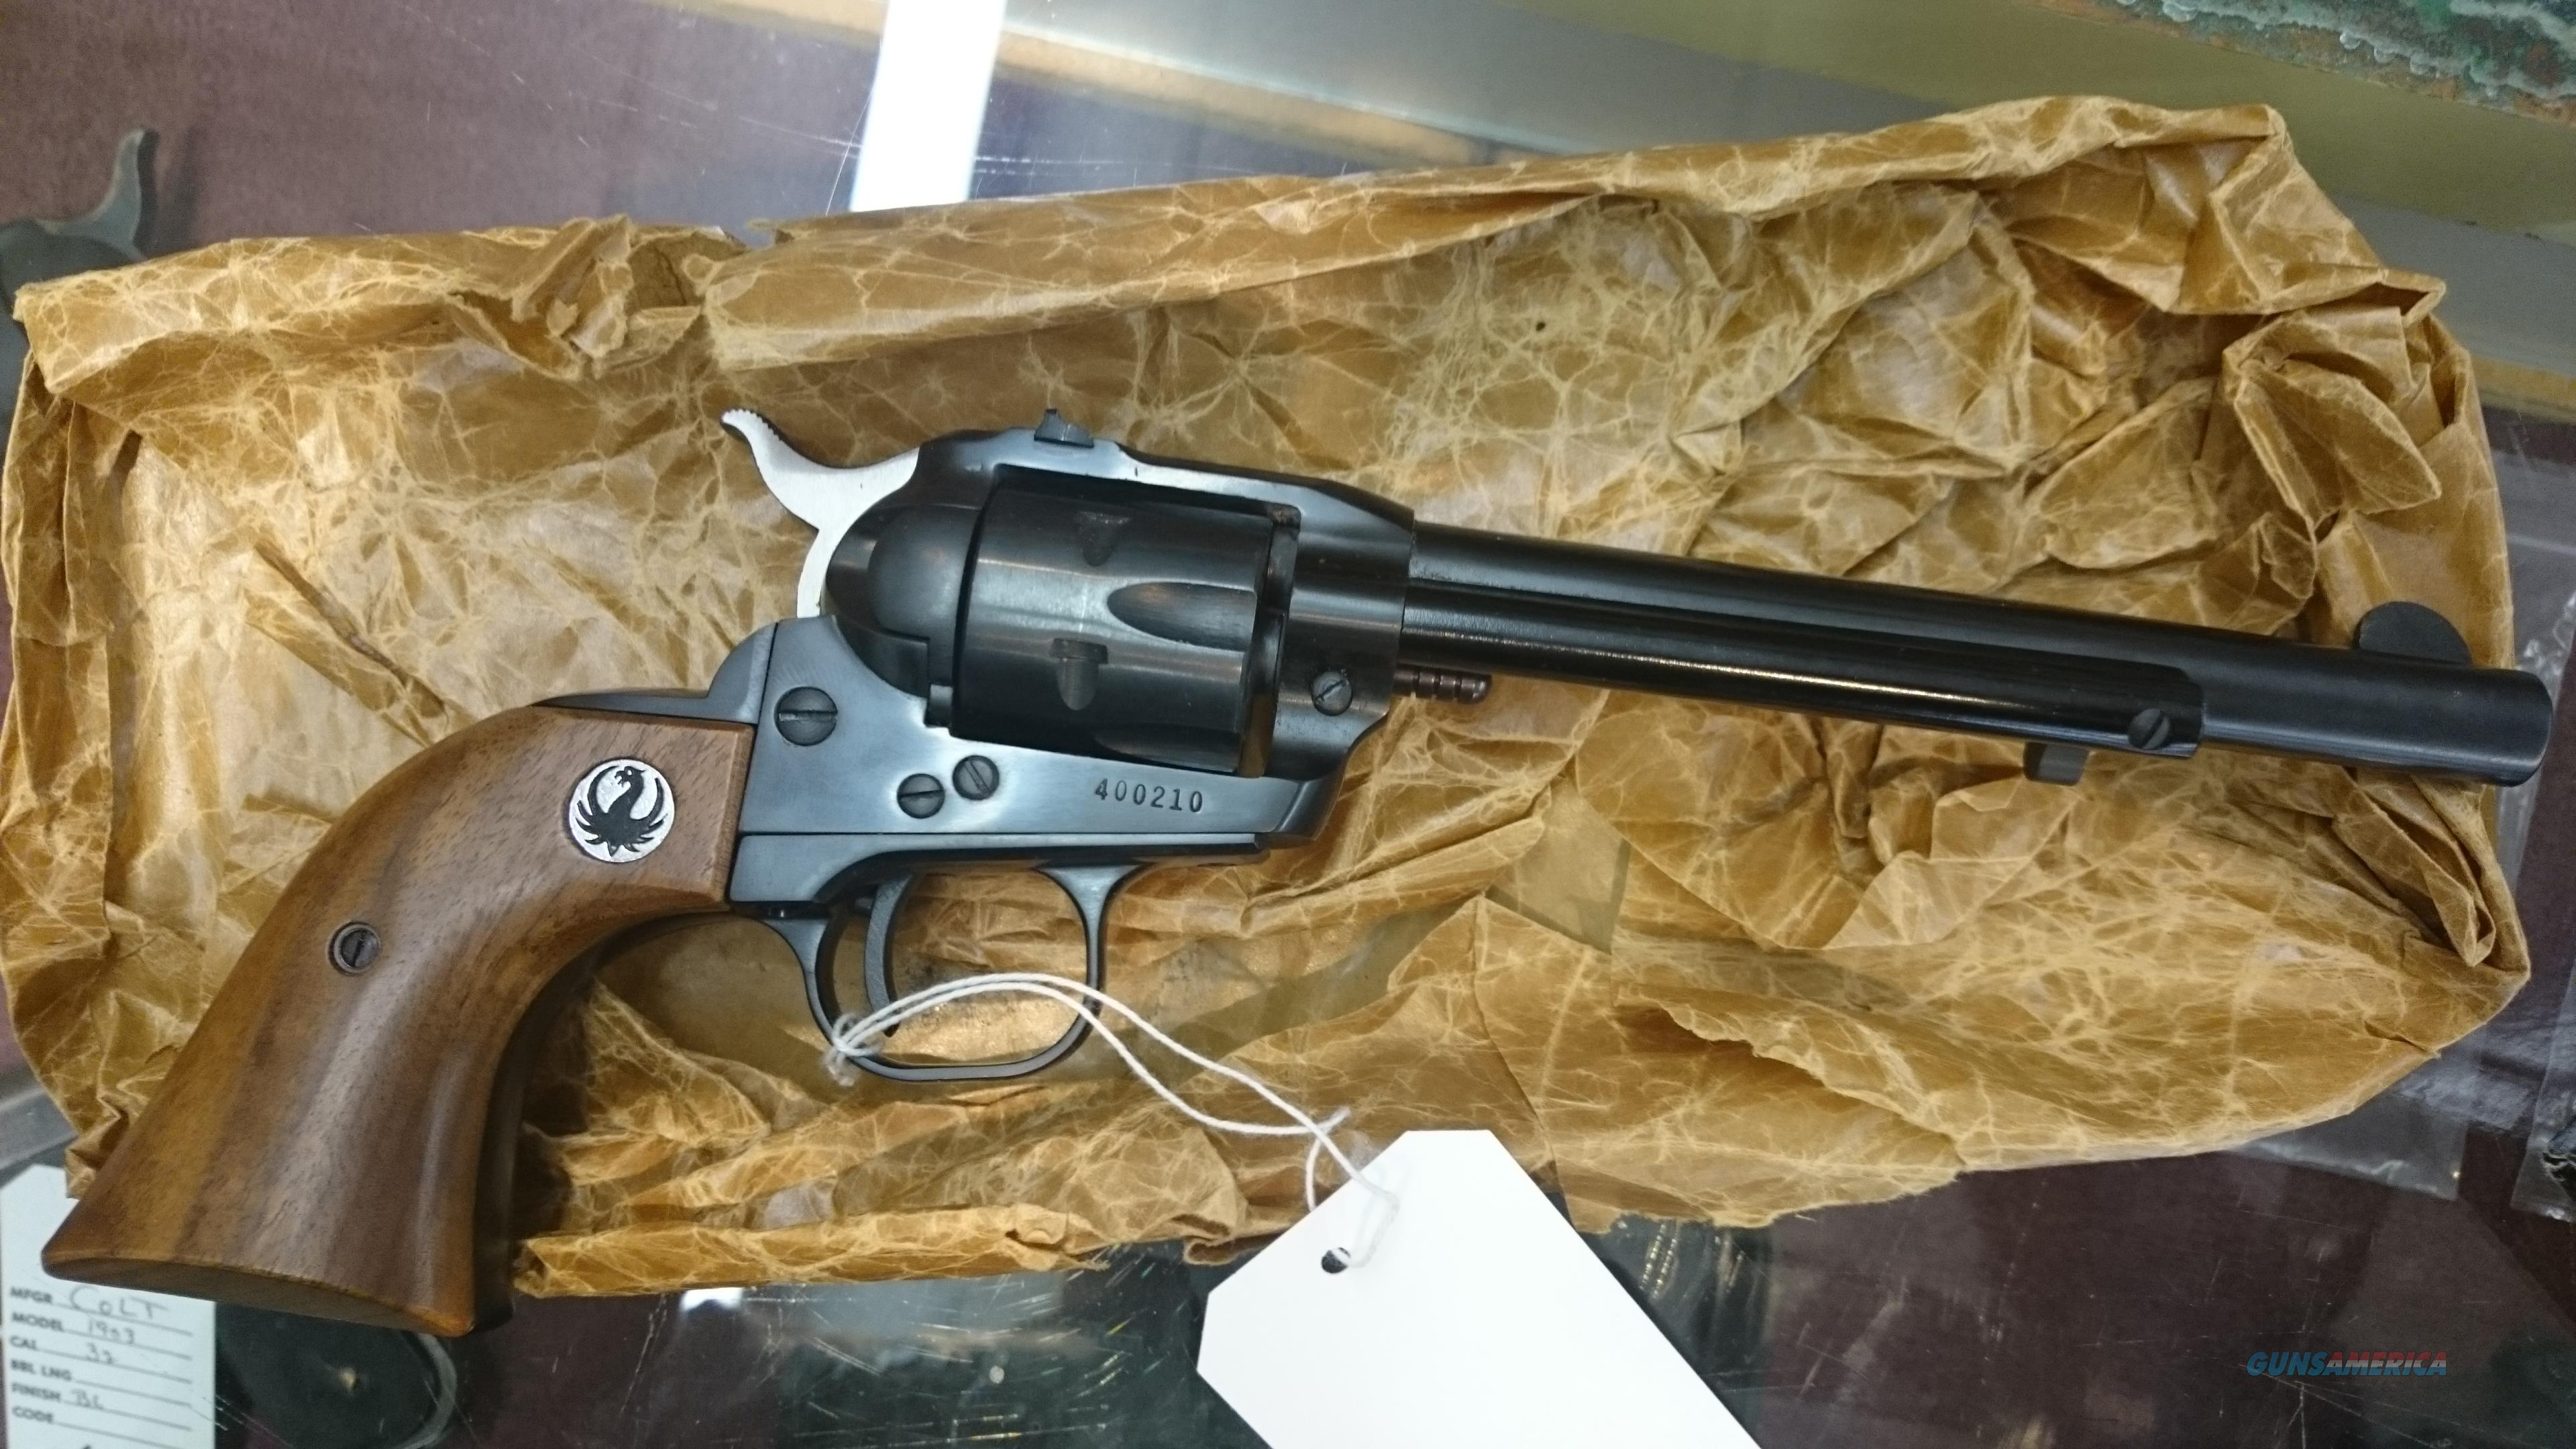 "MINT in box 1964 Ruger Single Six 22lr/22mag 6.5"" bbl  Guns > Pistols > Ruger Single Action Revolvers > Single Six Type"